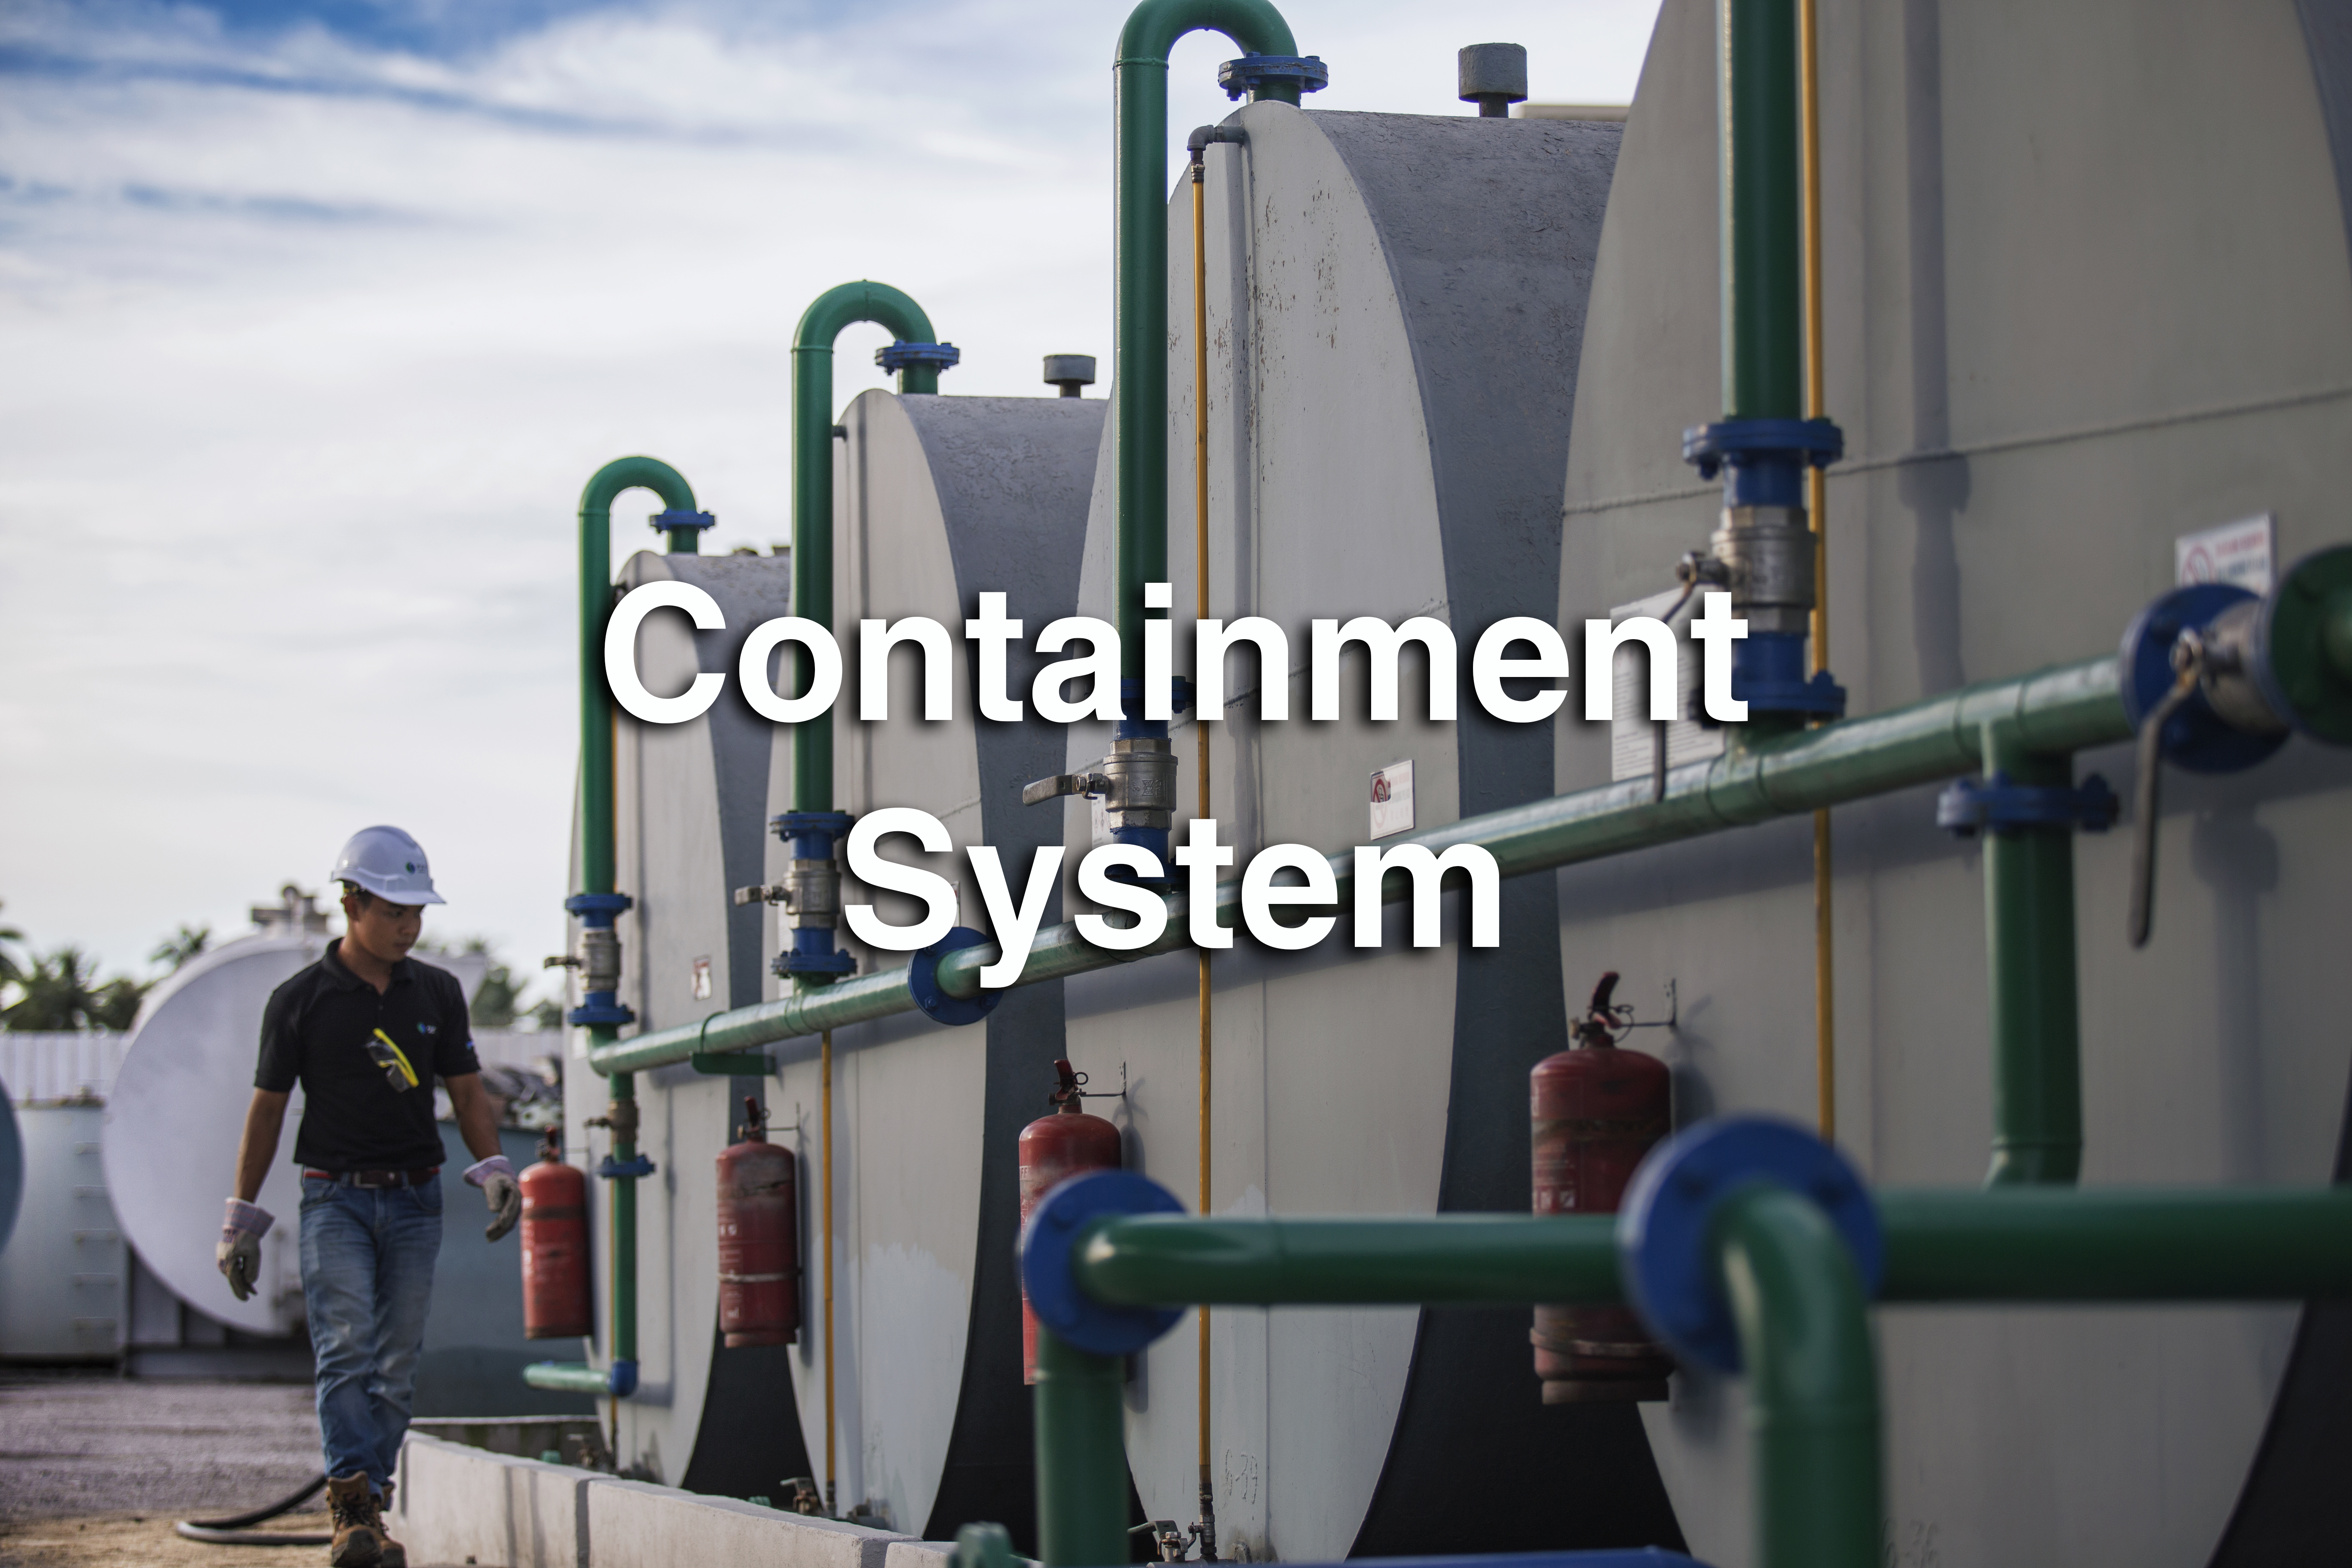 Containment System -edit